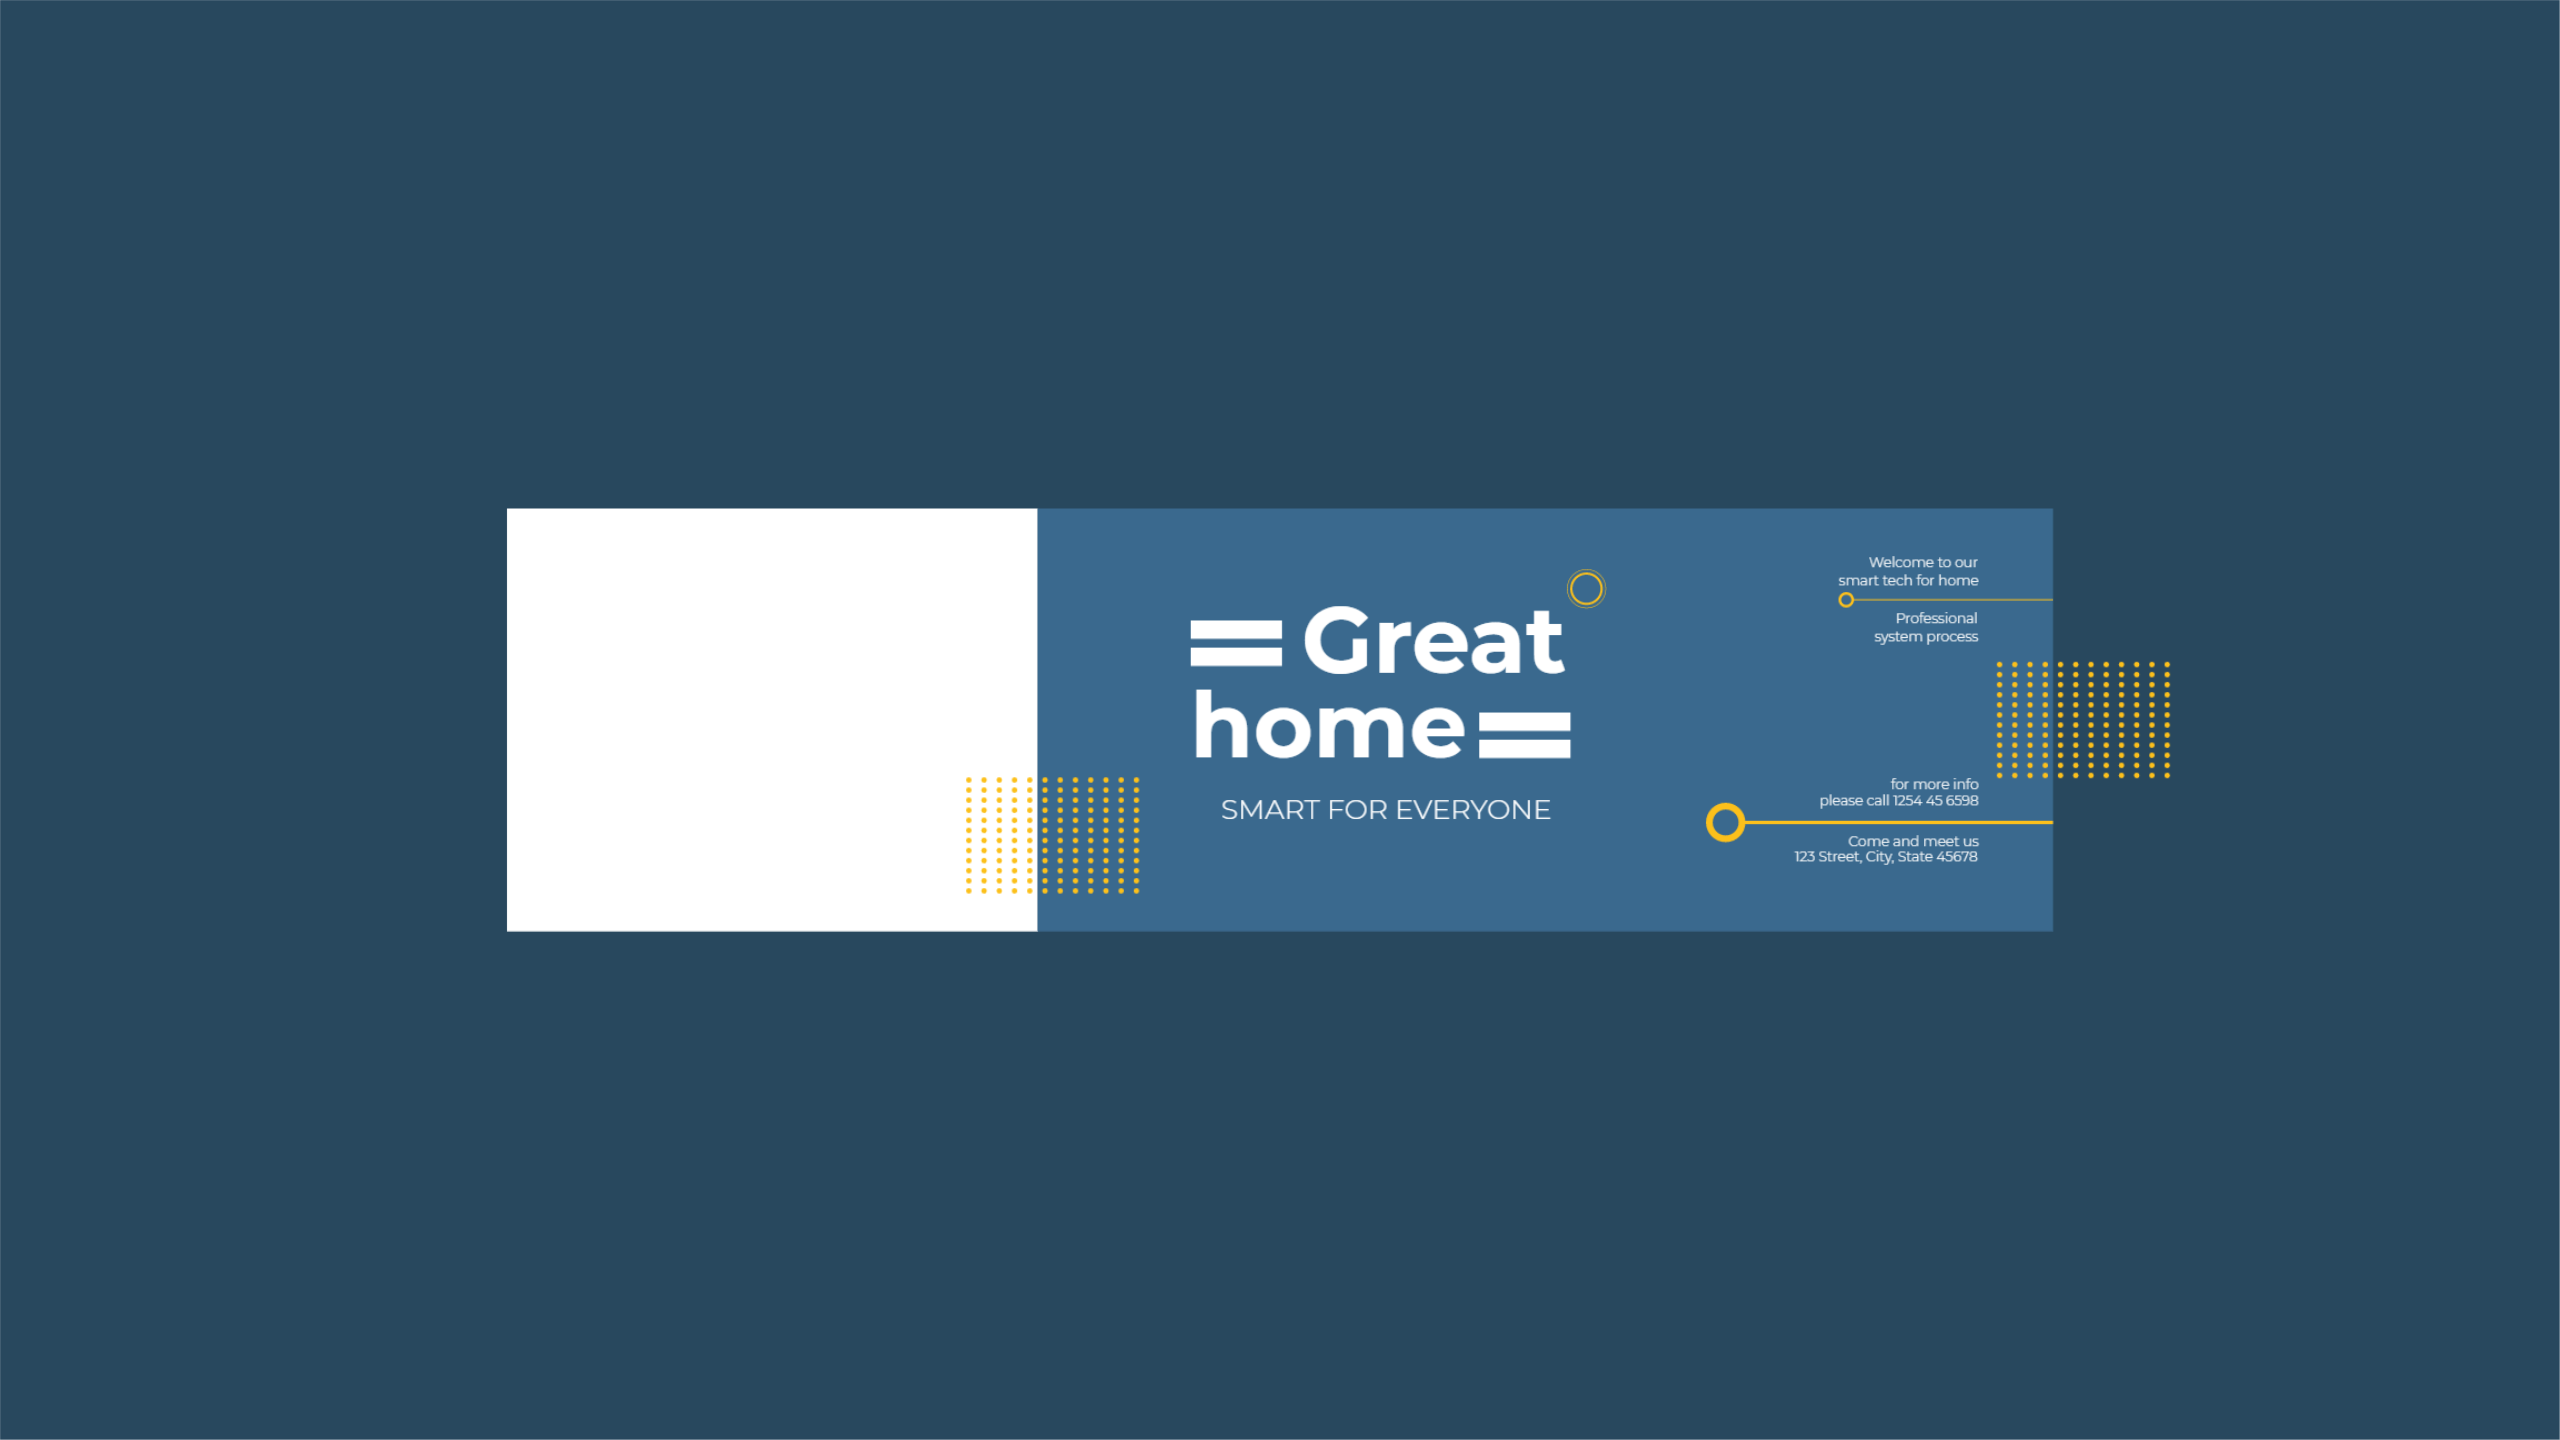 Great Home Youtube Channel Art Real Estate Architecture Seedtale Remarkable Youtube Channel Art Piece Wi Youtube Channel Art Channel Art Youtube Design